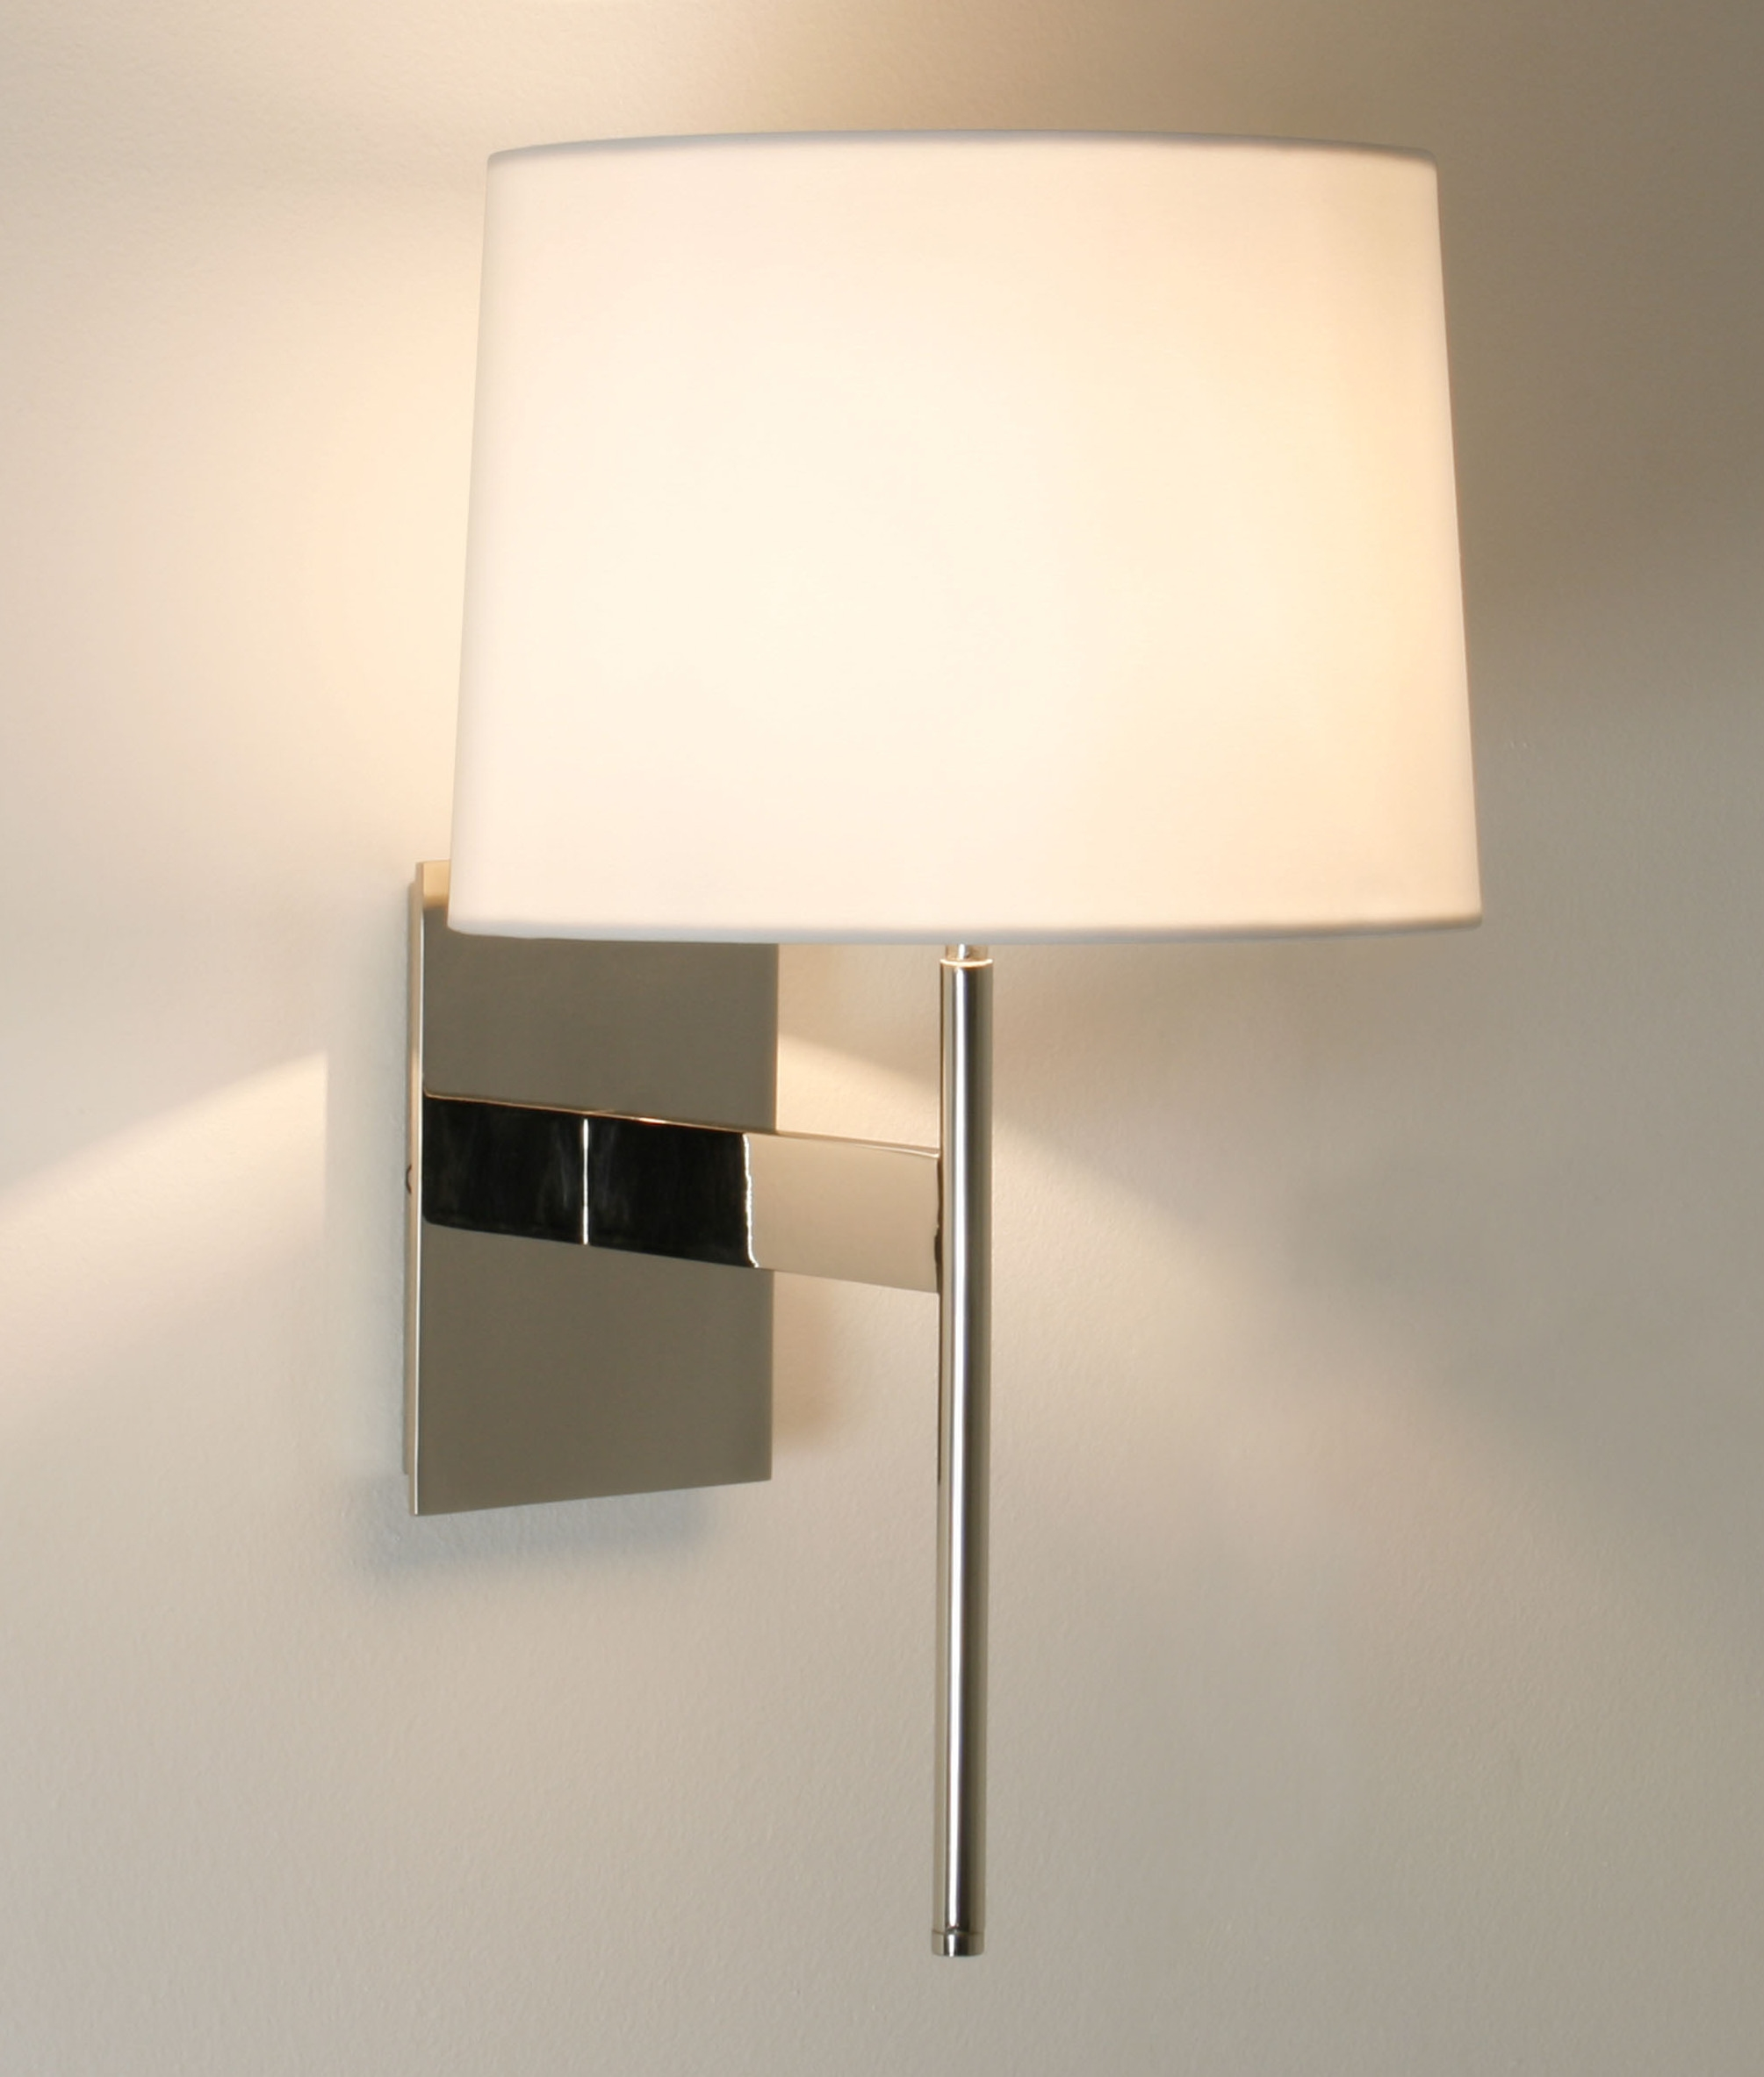 Wall Light Lamp Shades Fabric : Elegant wall light with fabric shade is available in three finishes